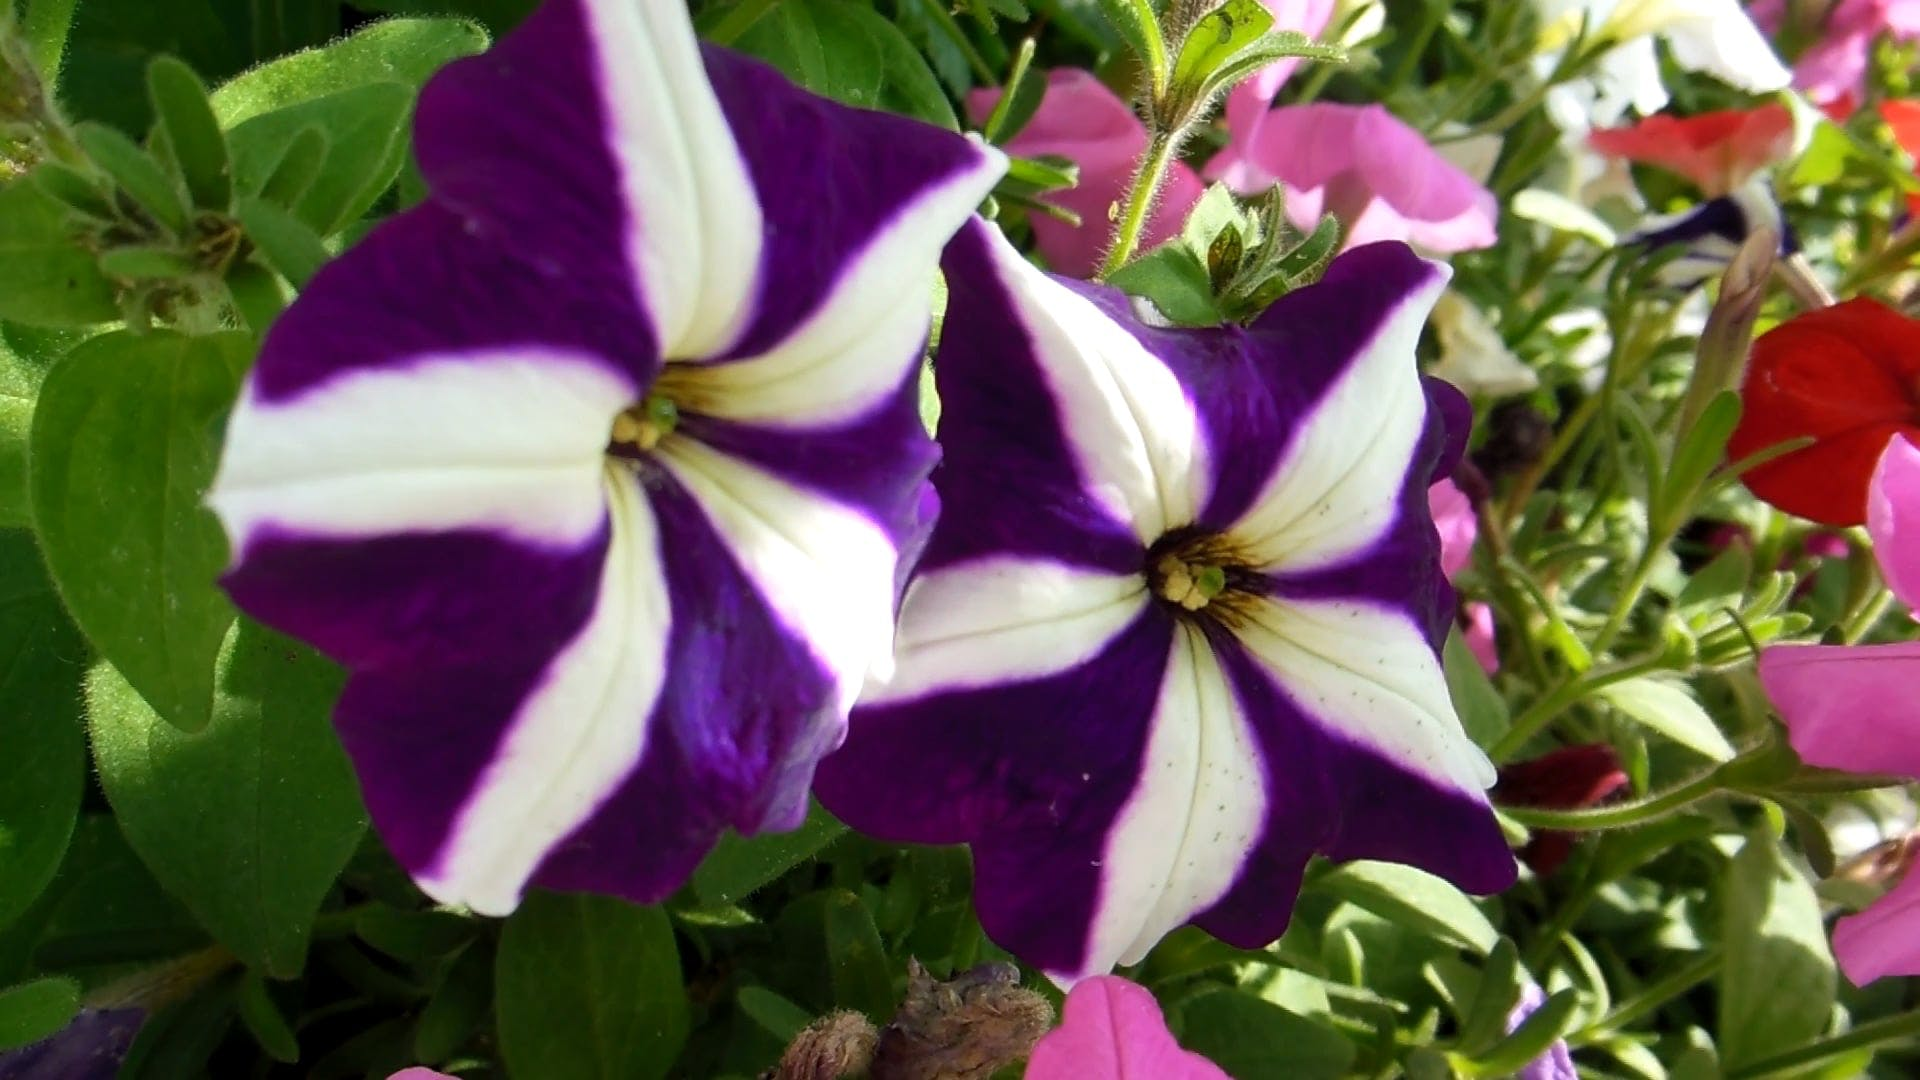 Purple Flowers With White Stripes